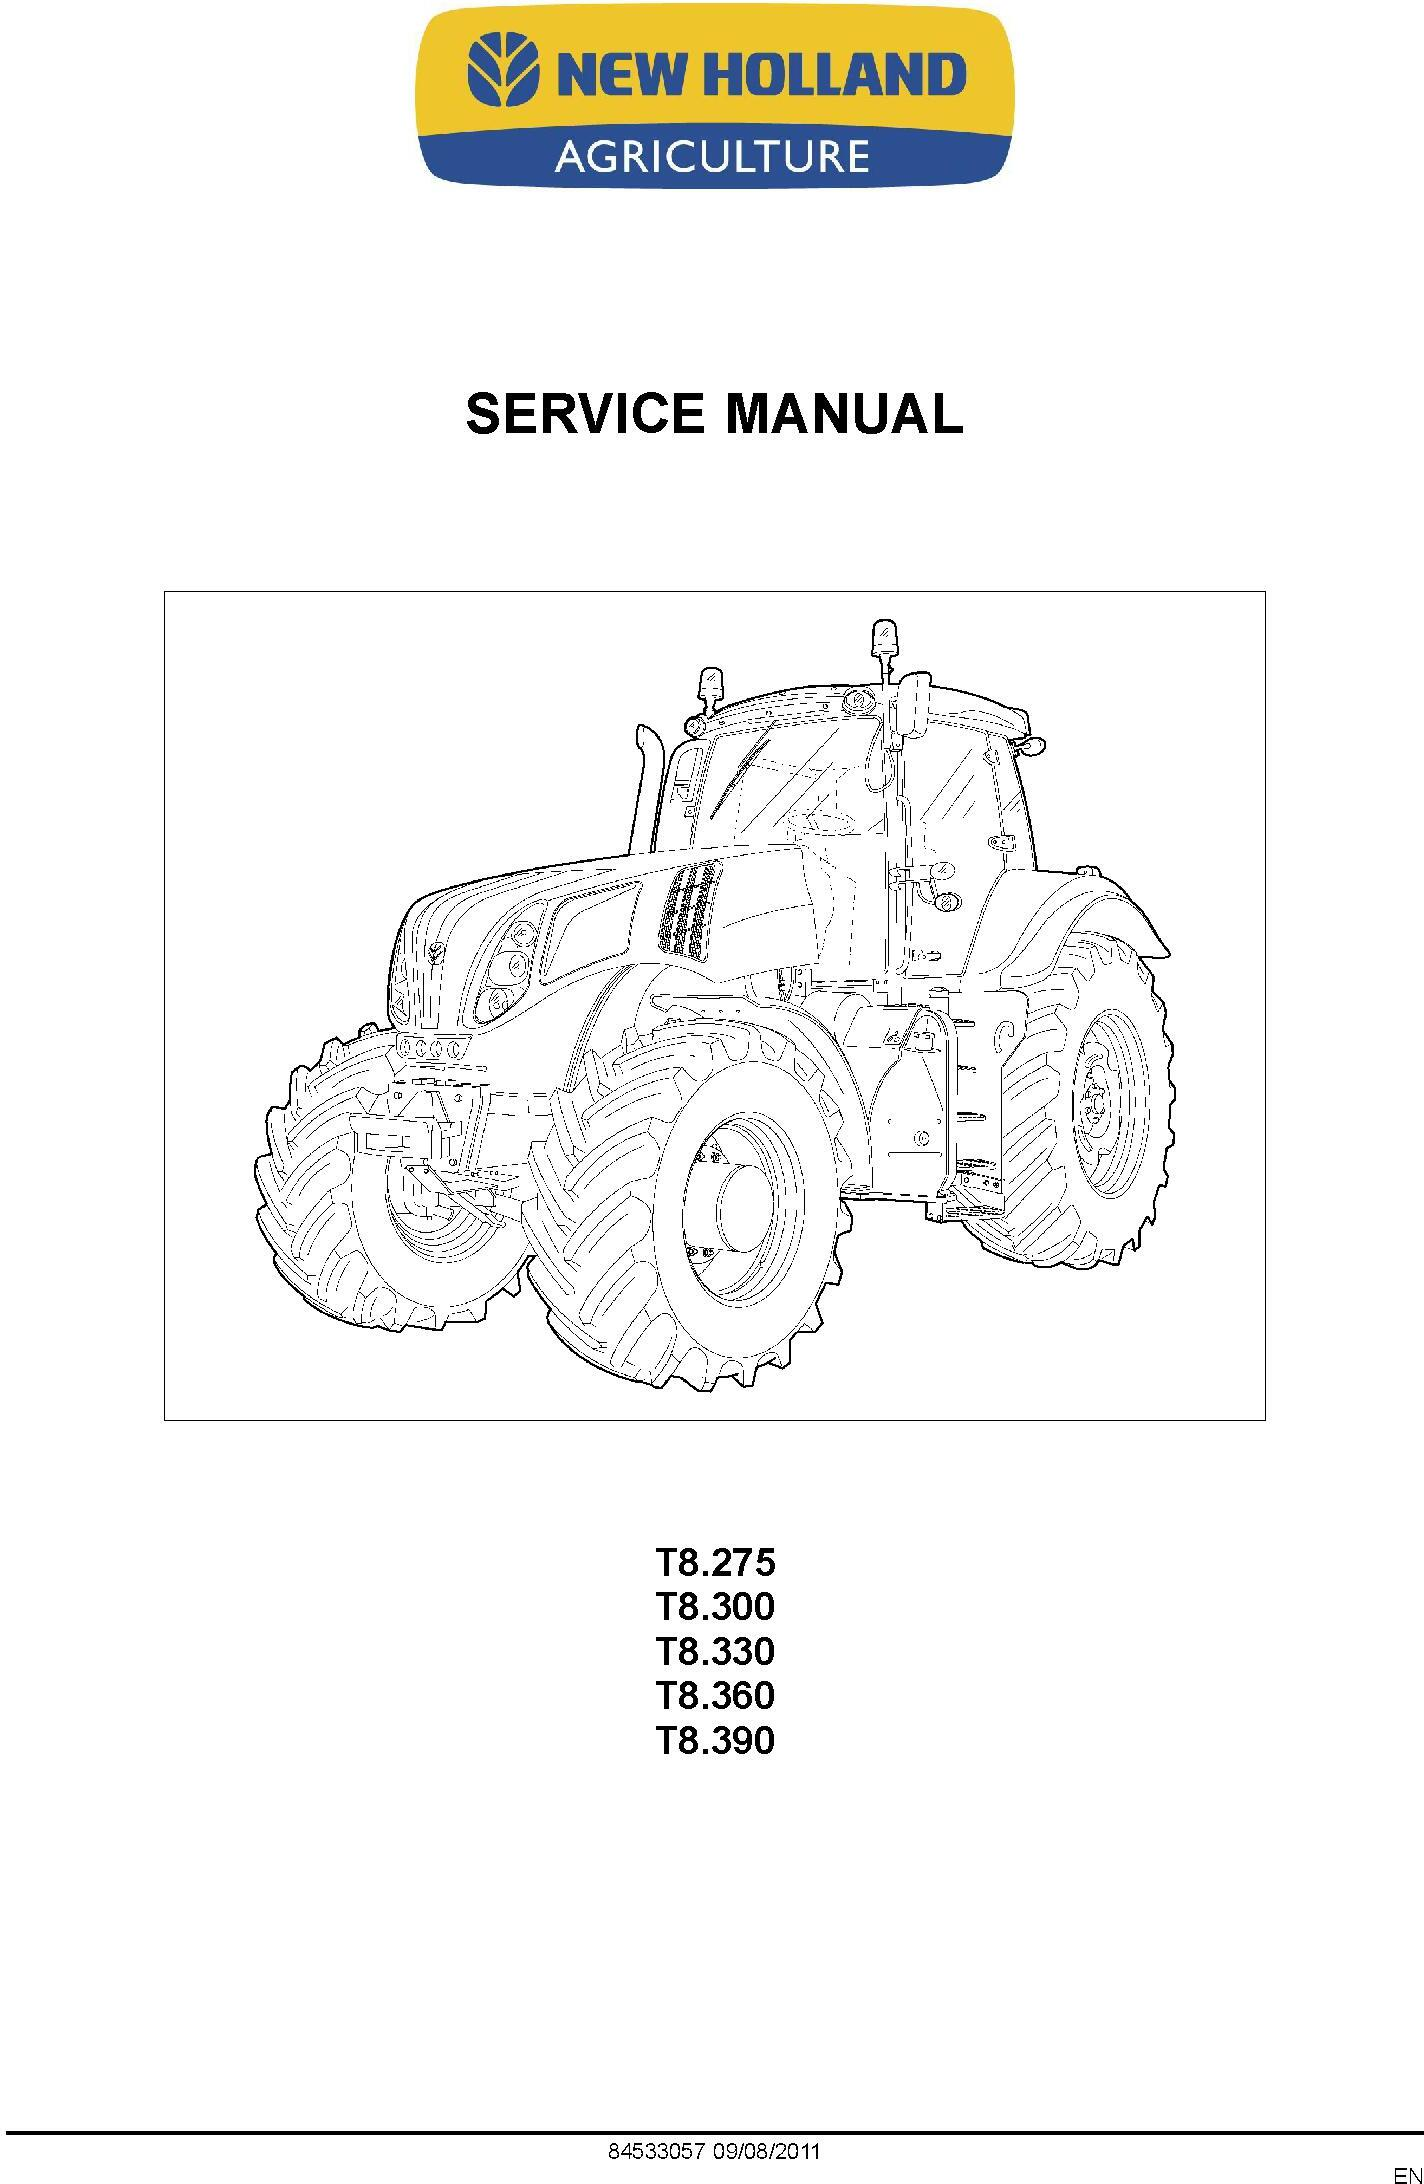 New Holland T8.275, T8.300, T8.330, T8.360, T8.390 Agricultural Tractor Service Manual (08/2011) - 19578